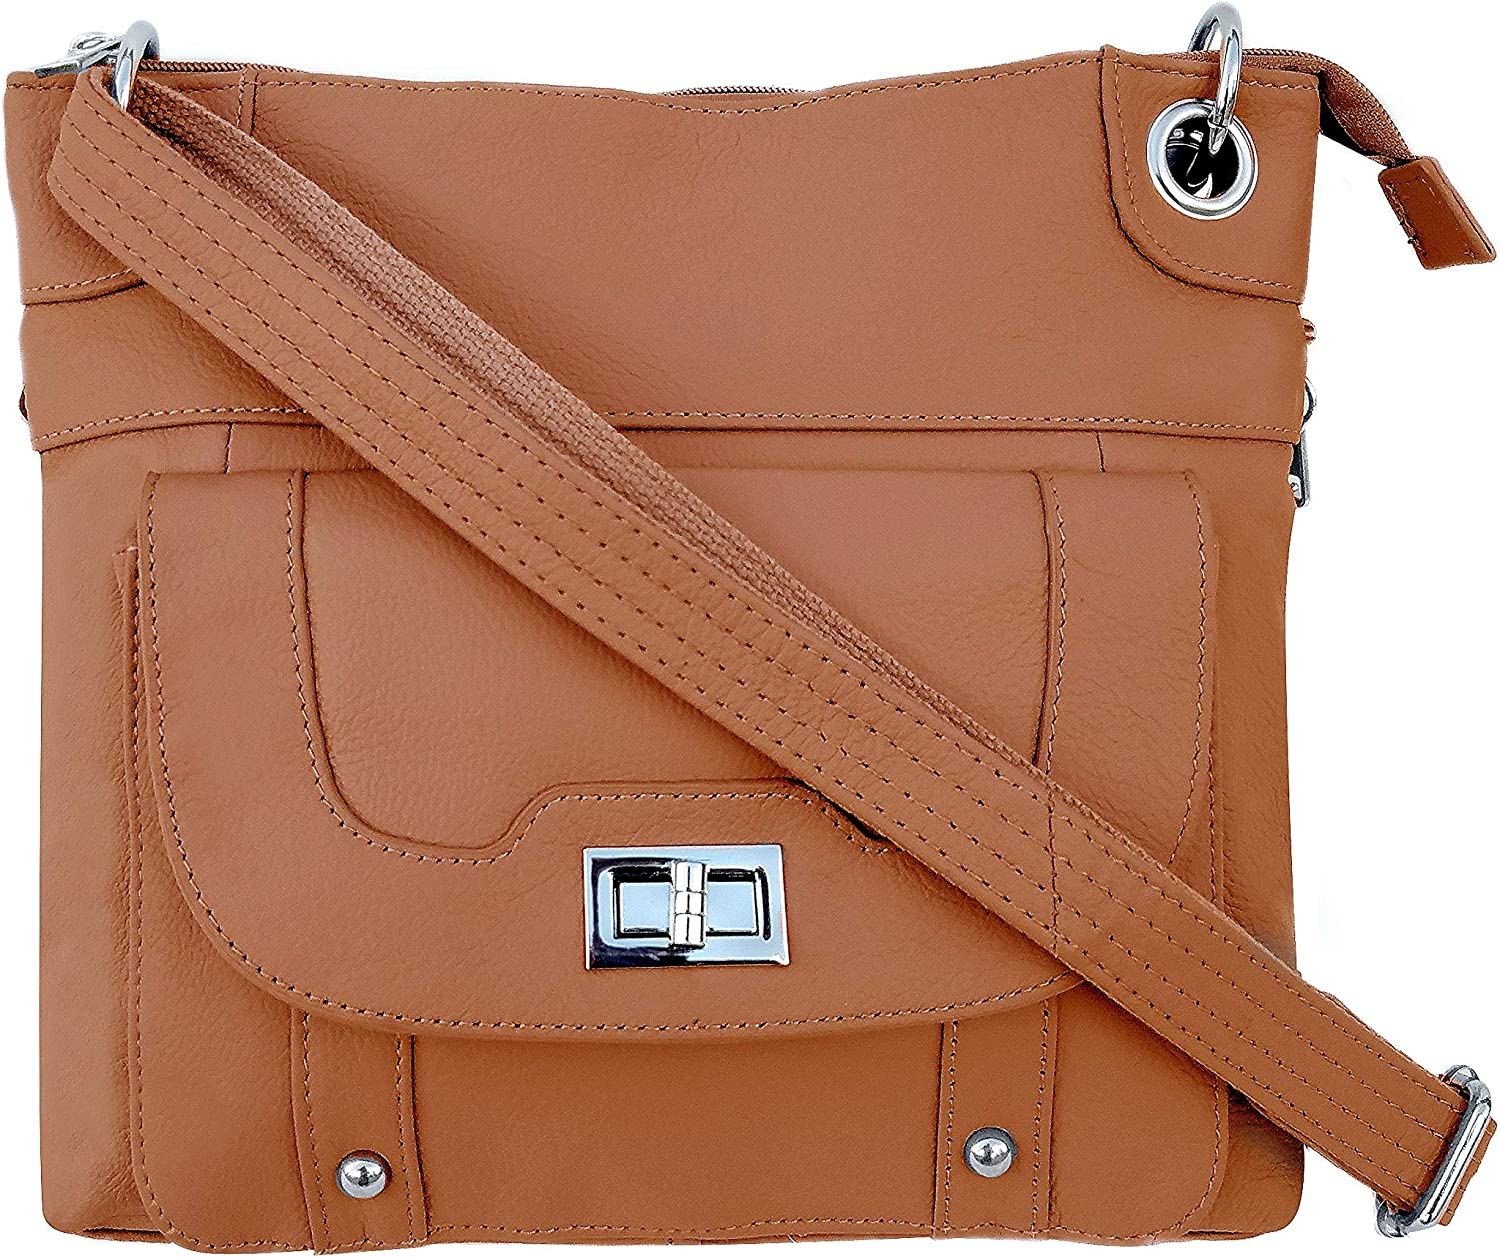 Concealed Carry Purse Leather Crossbody Messenger by Roma Leathers